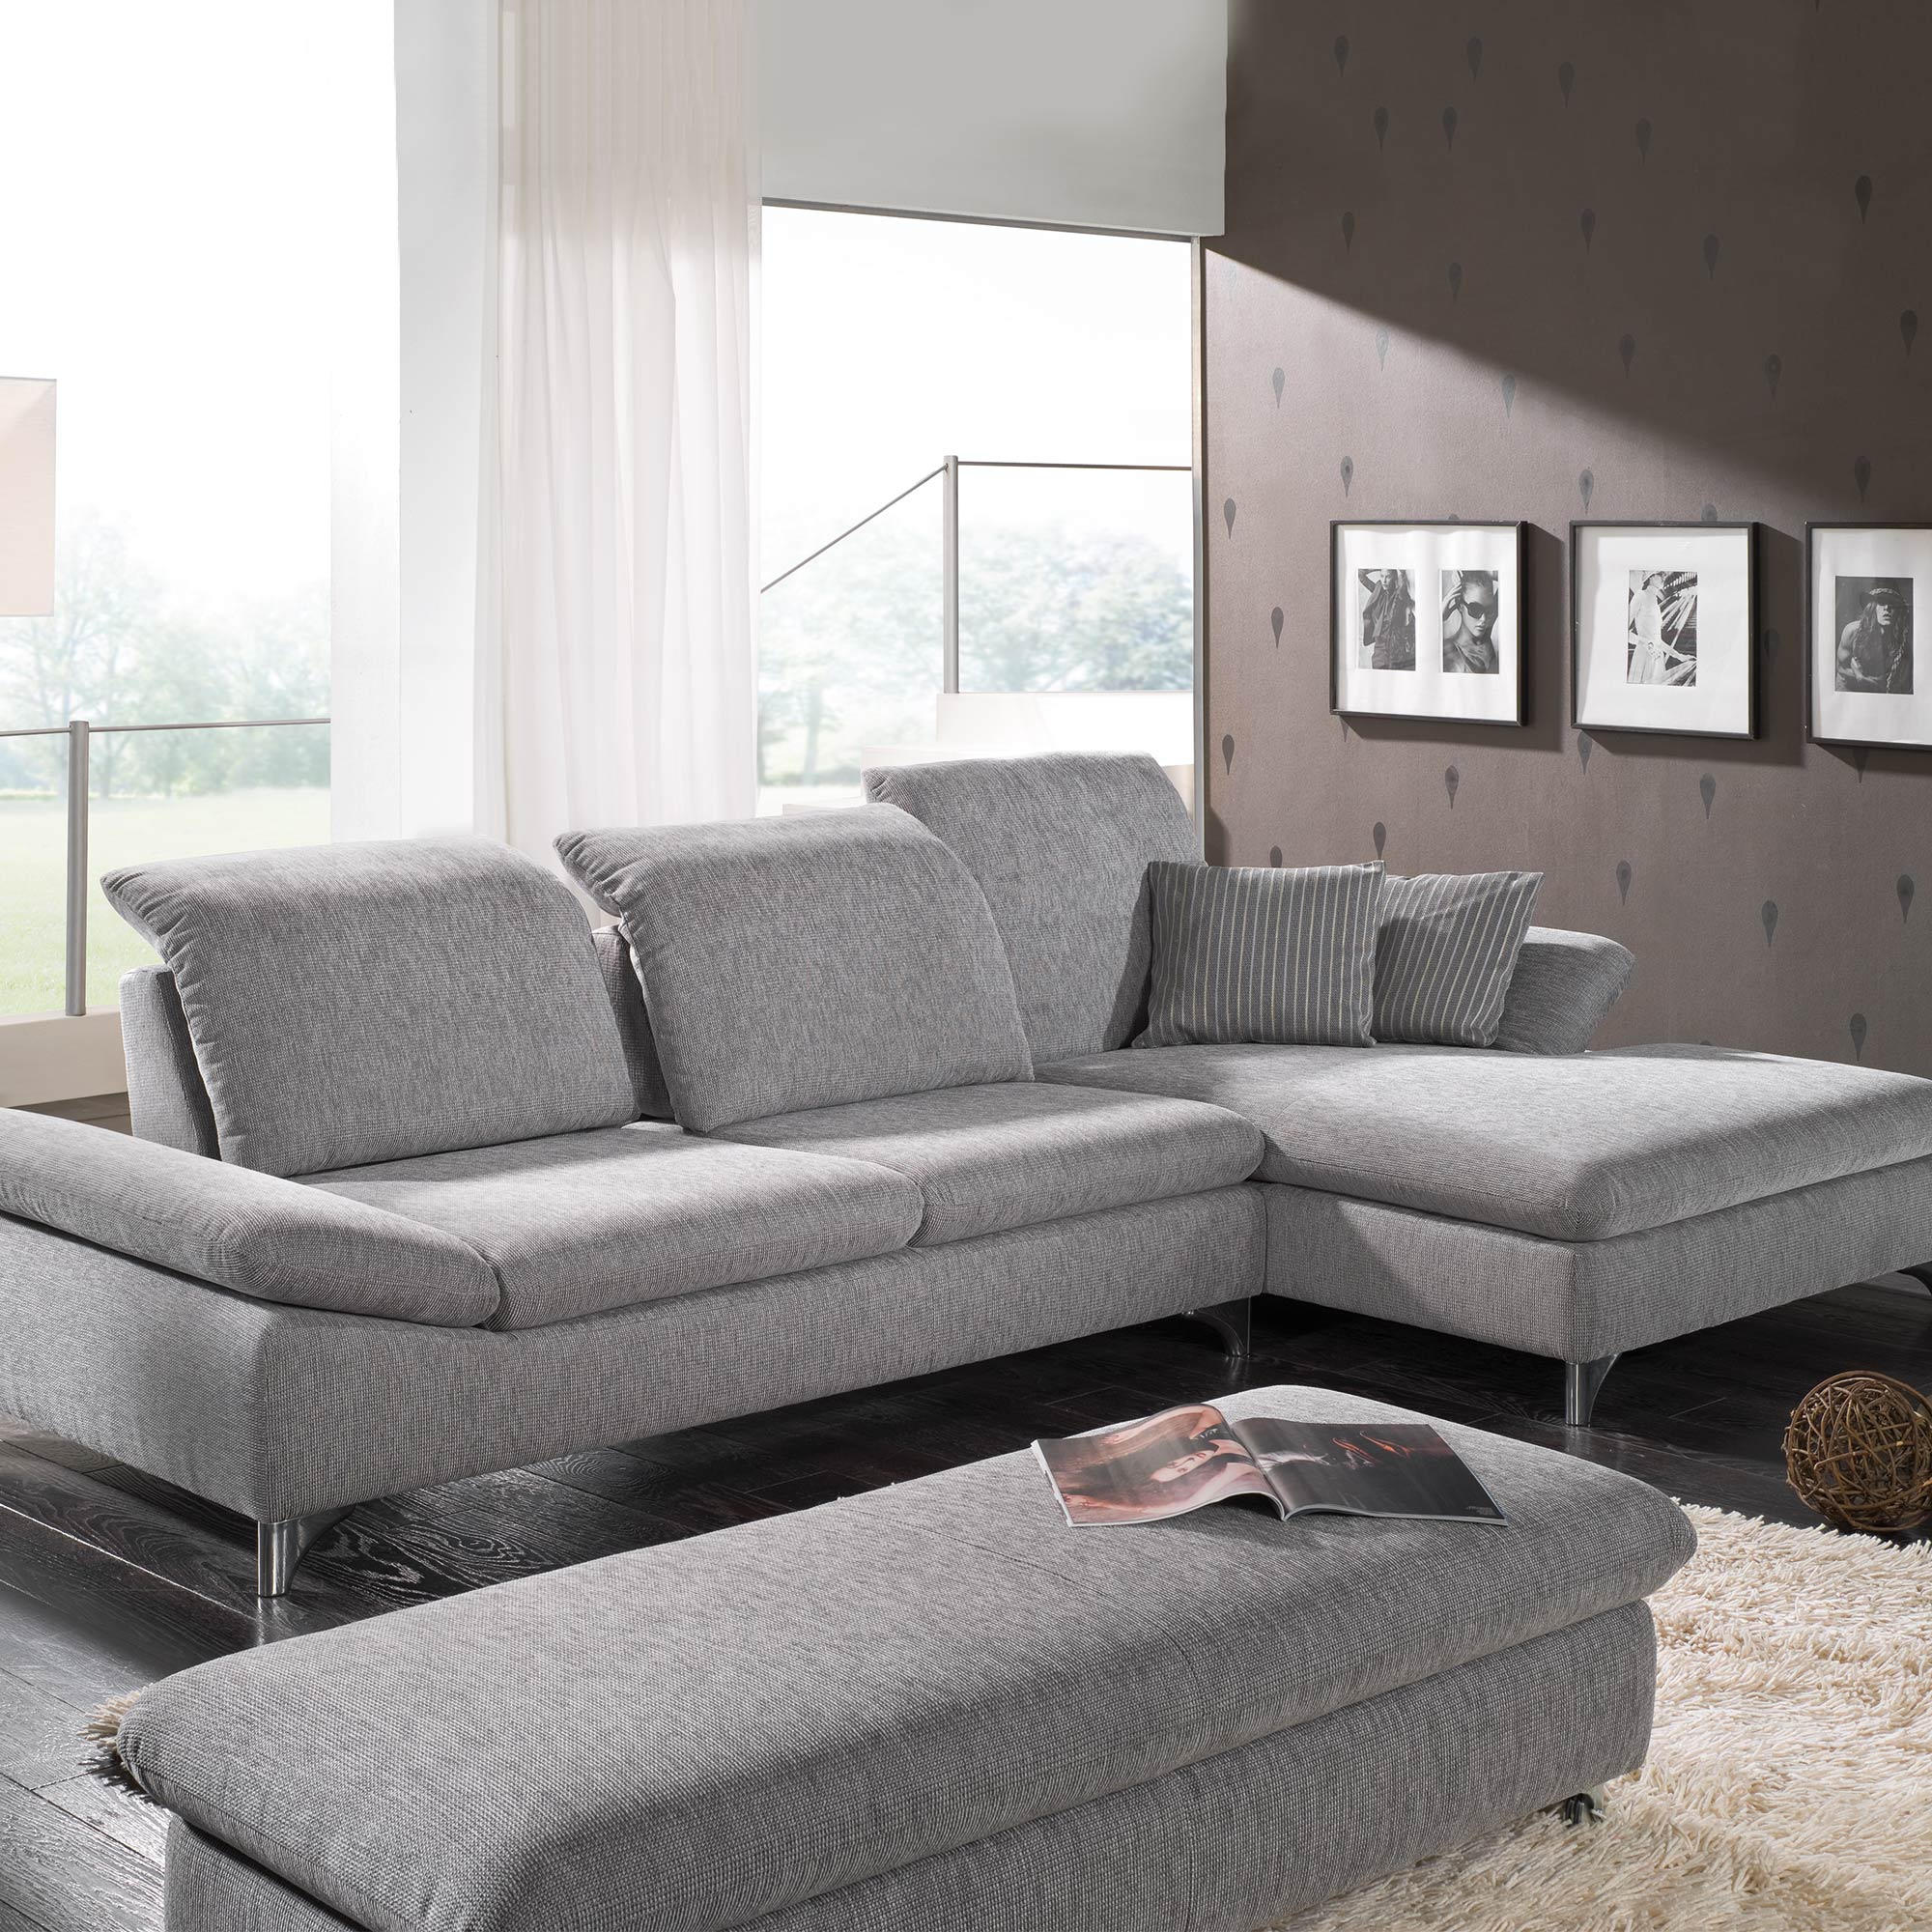 enjoy sofa von w schillig m bel b r ag. Black Bedroom Furniture Sets. Home Design Ideas